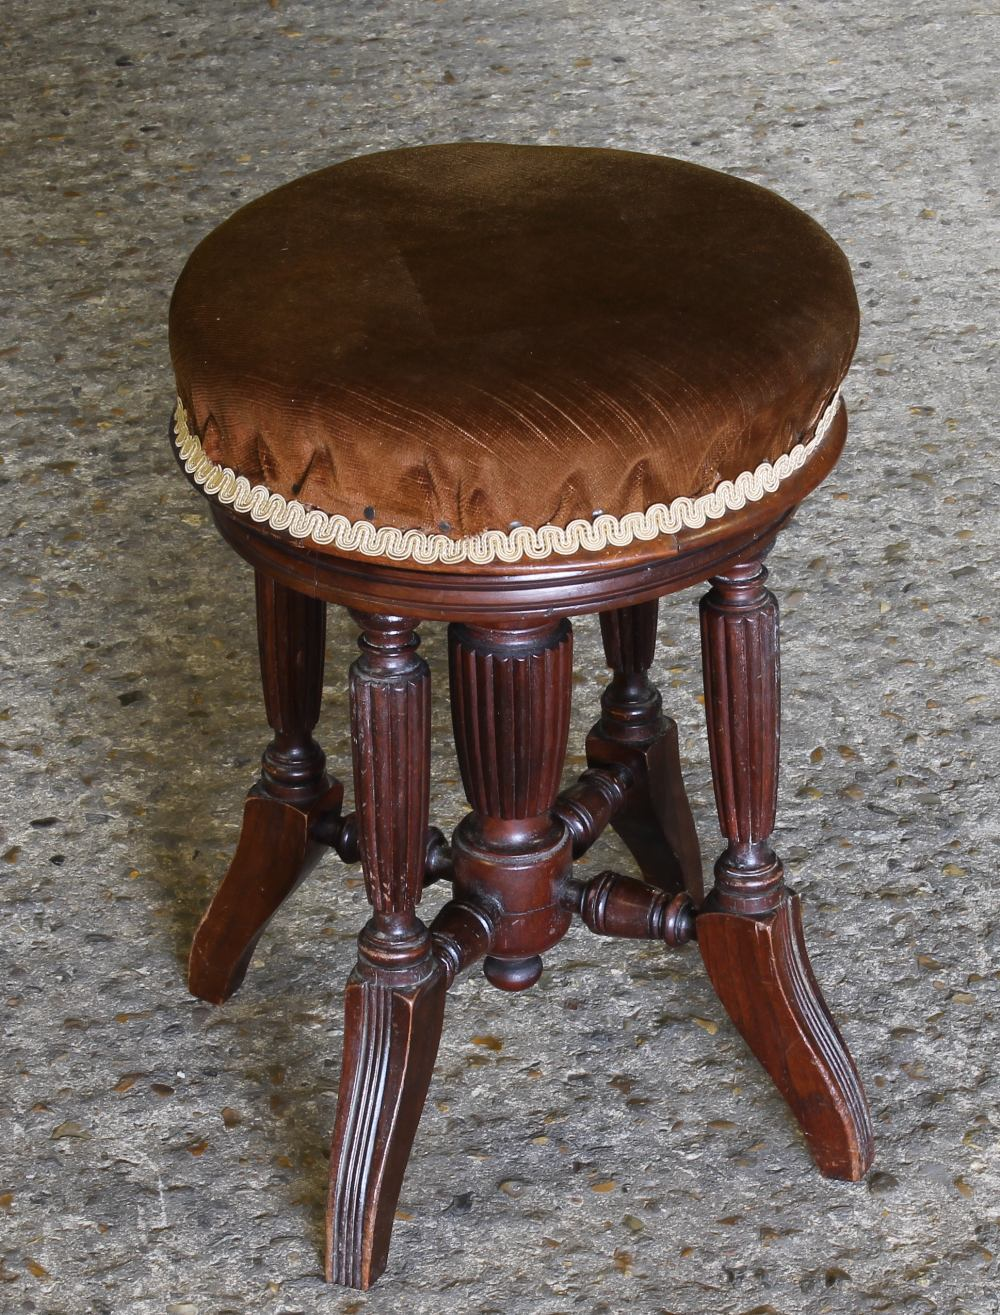 Lot 91 - Piano Stool A Victorian round adjustable piano stool with four fluted supports & Piano Stool A Victorian round adjustable piano stool with four ... islam-shia.org